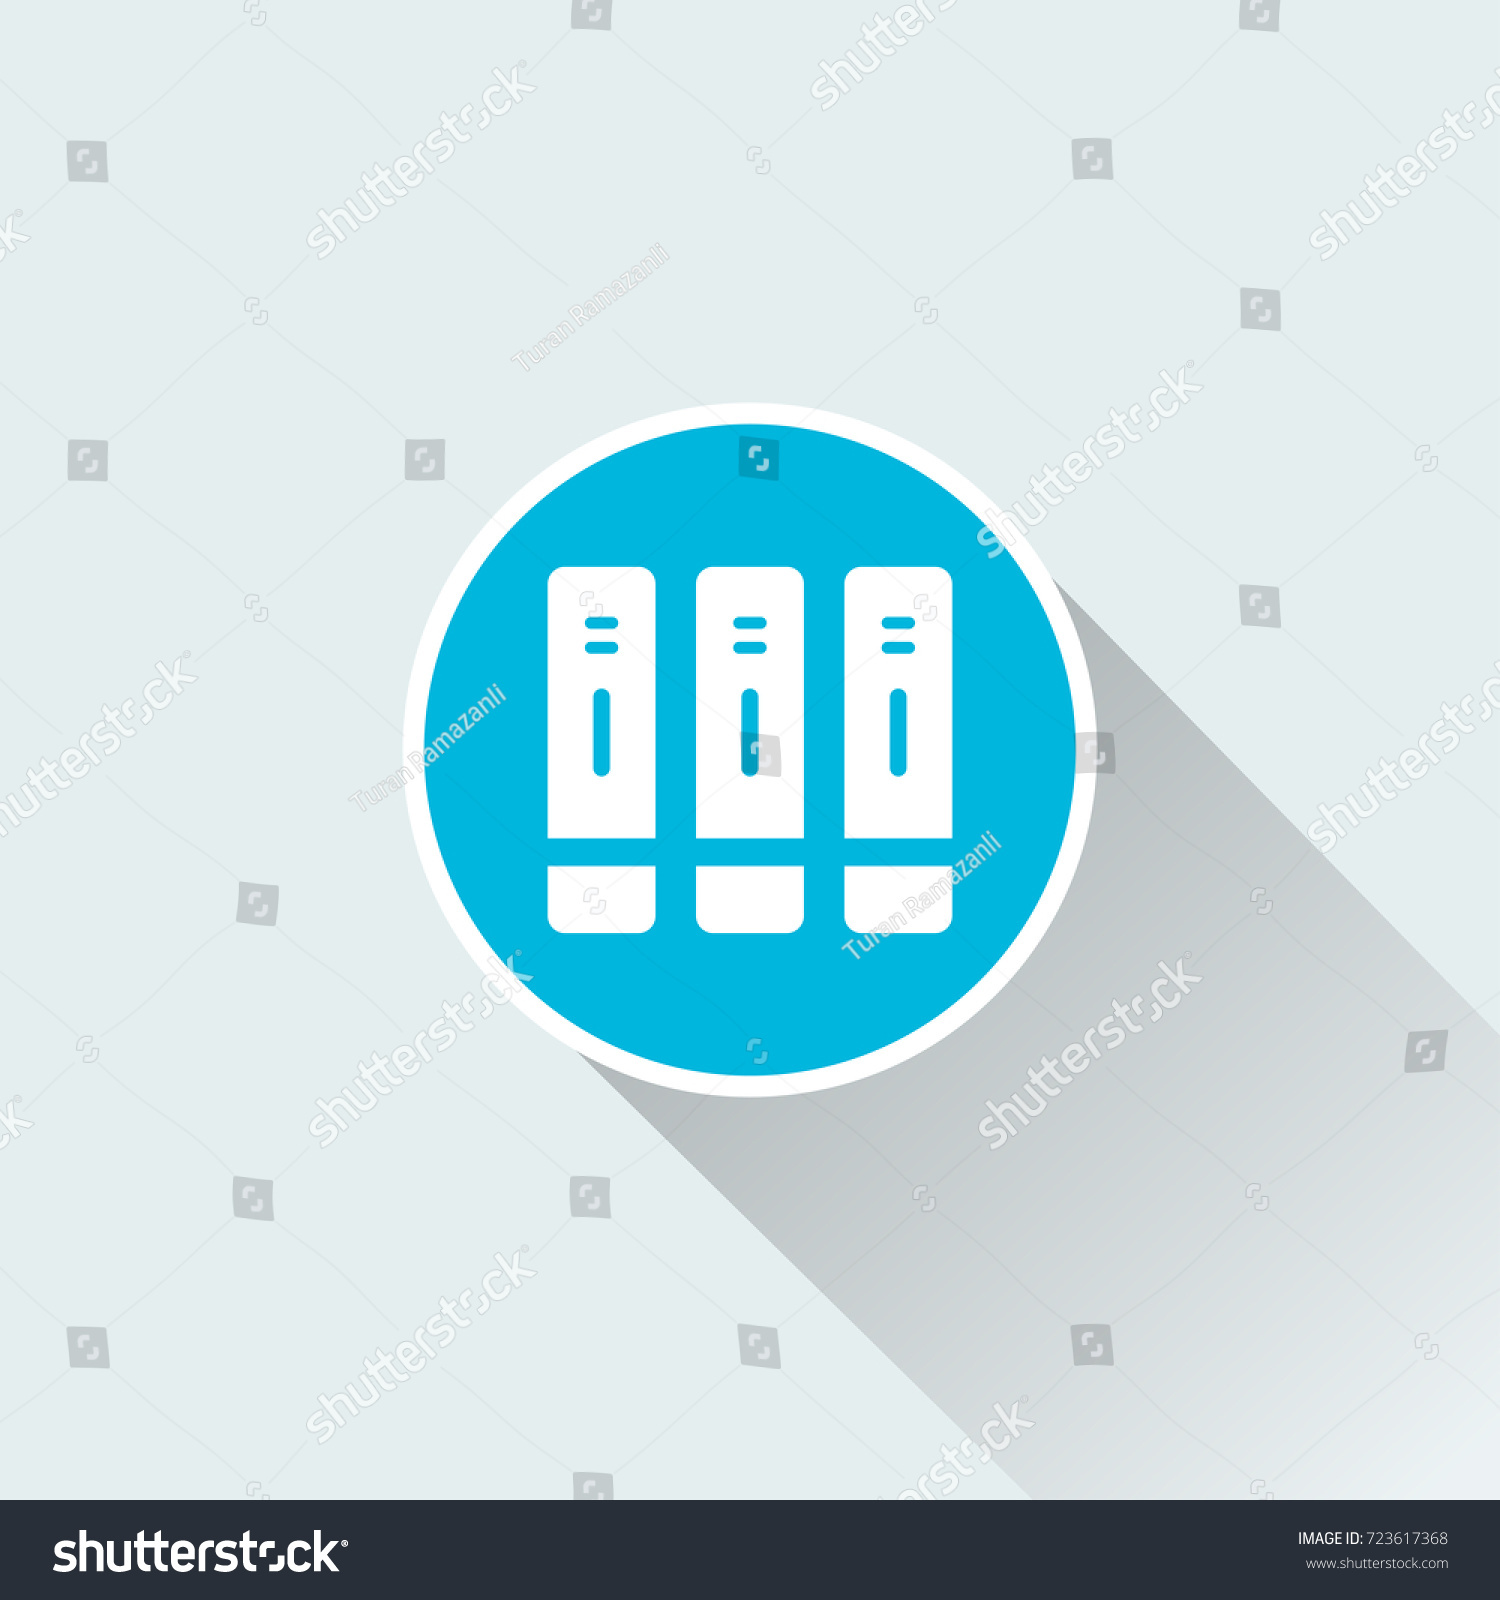 Filing Cabinet Icon Flat Royalty Free Stock Illustration Of Flat Filing Cabinet Icon Stock